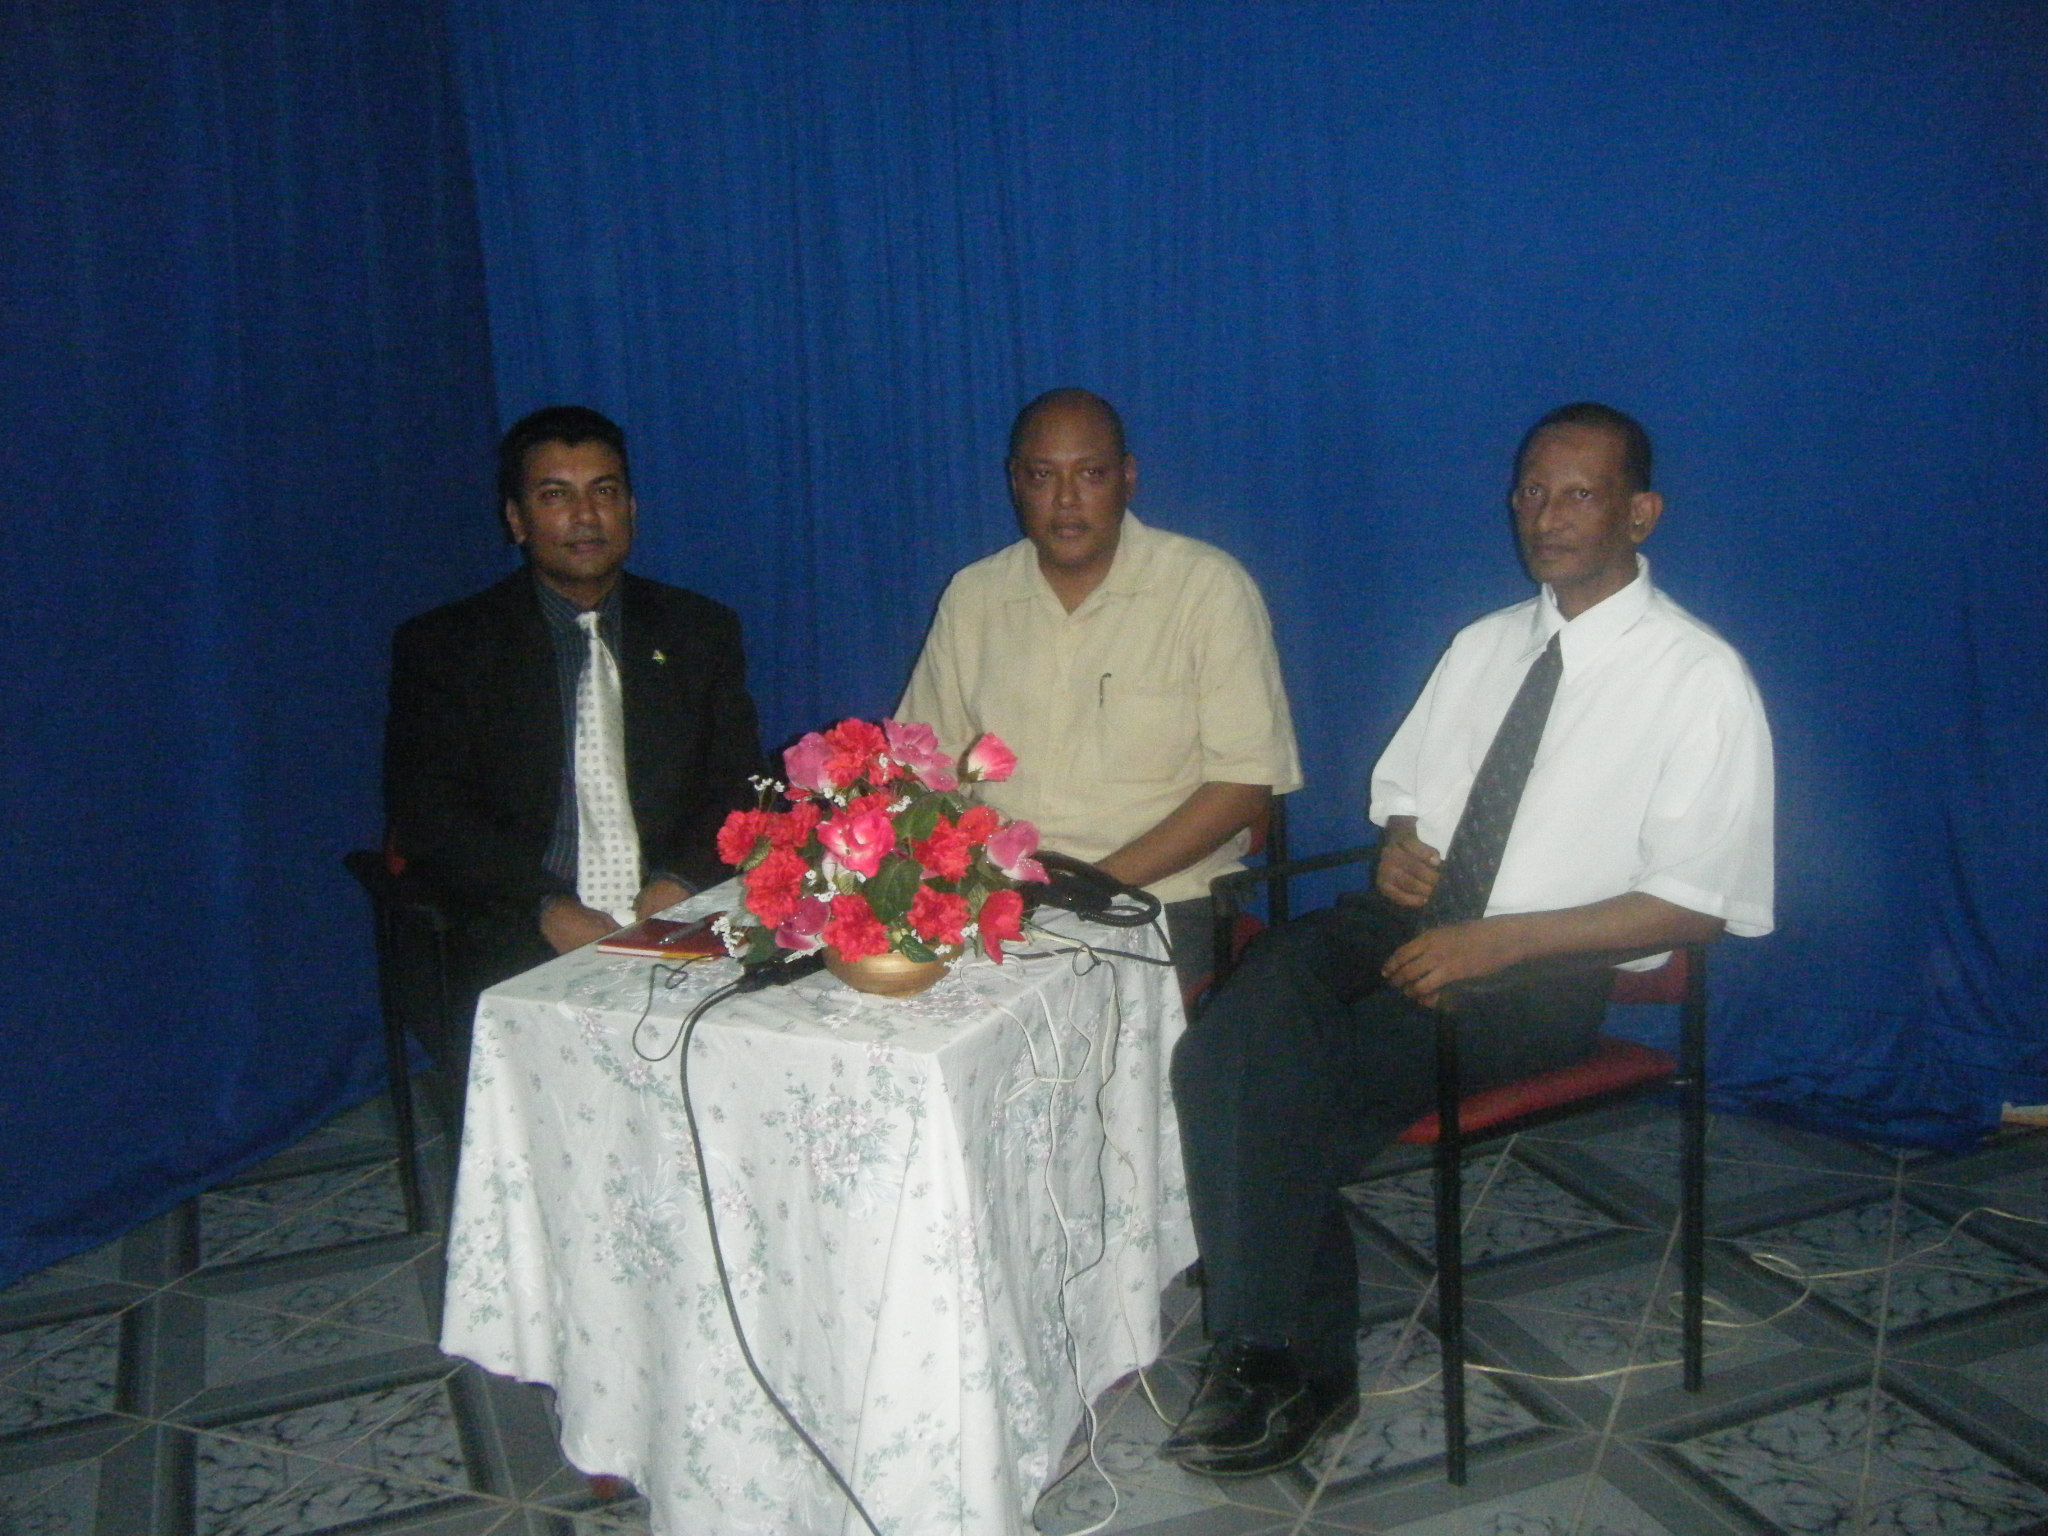 rapheal-trotman-pradeep-bachan-and-peter-ramsaroop-host-a-live-tv-show-in-region-6-berbice